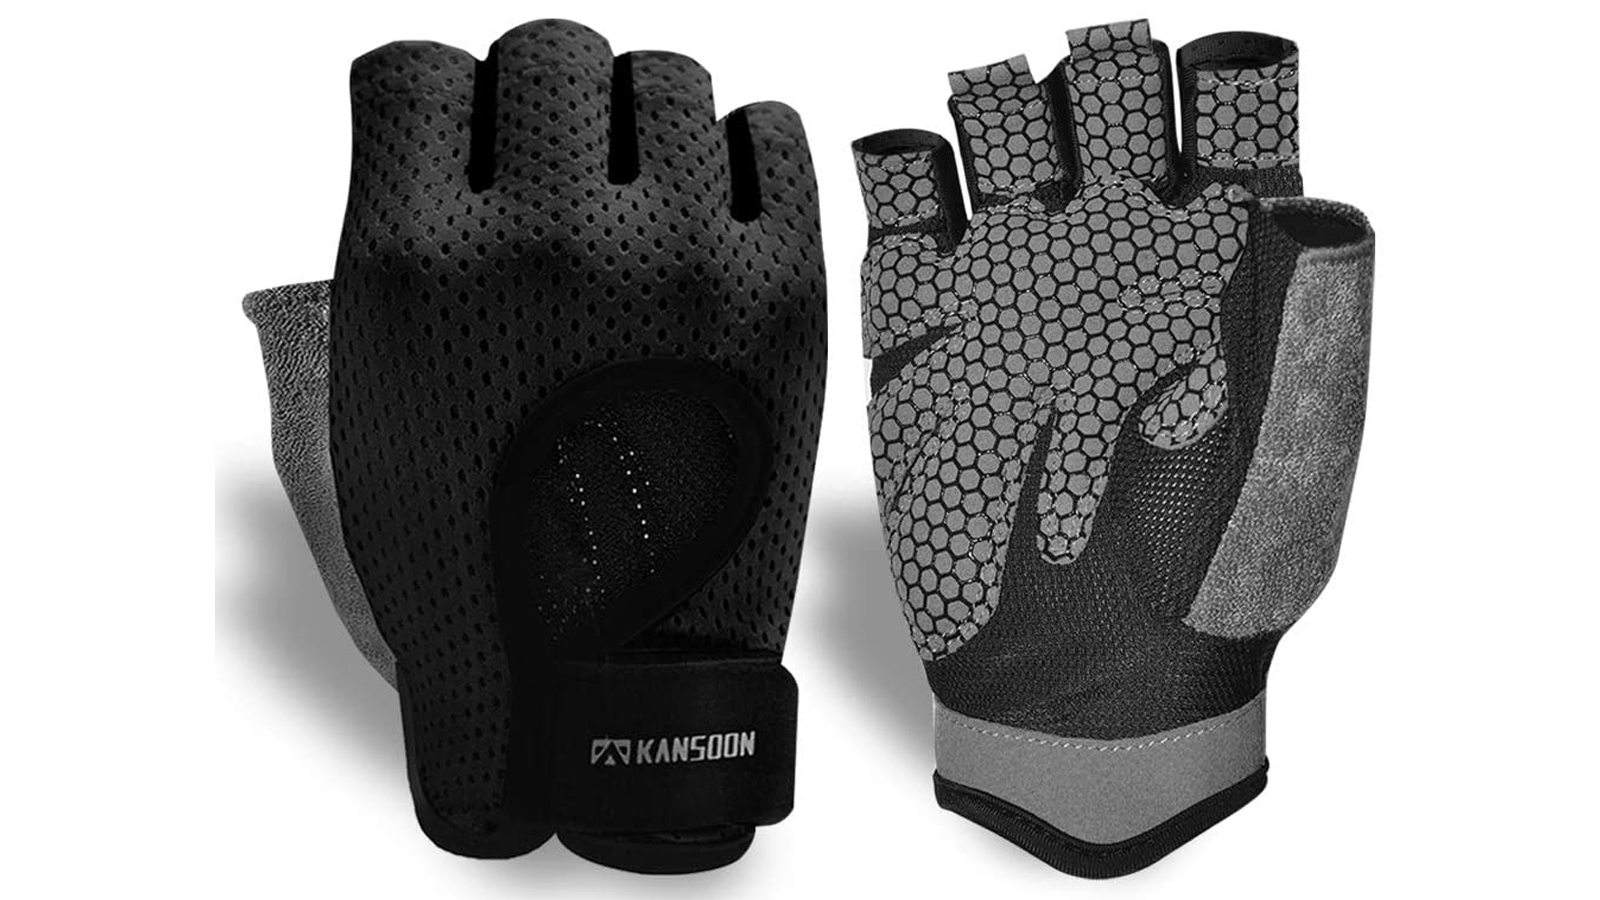 These Workout Gloves Help You Get a Grip in Your Workouts